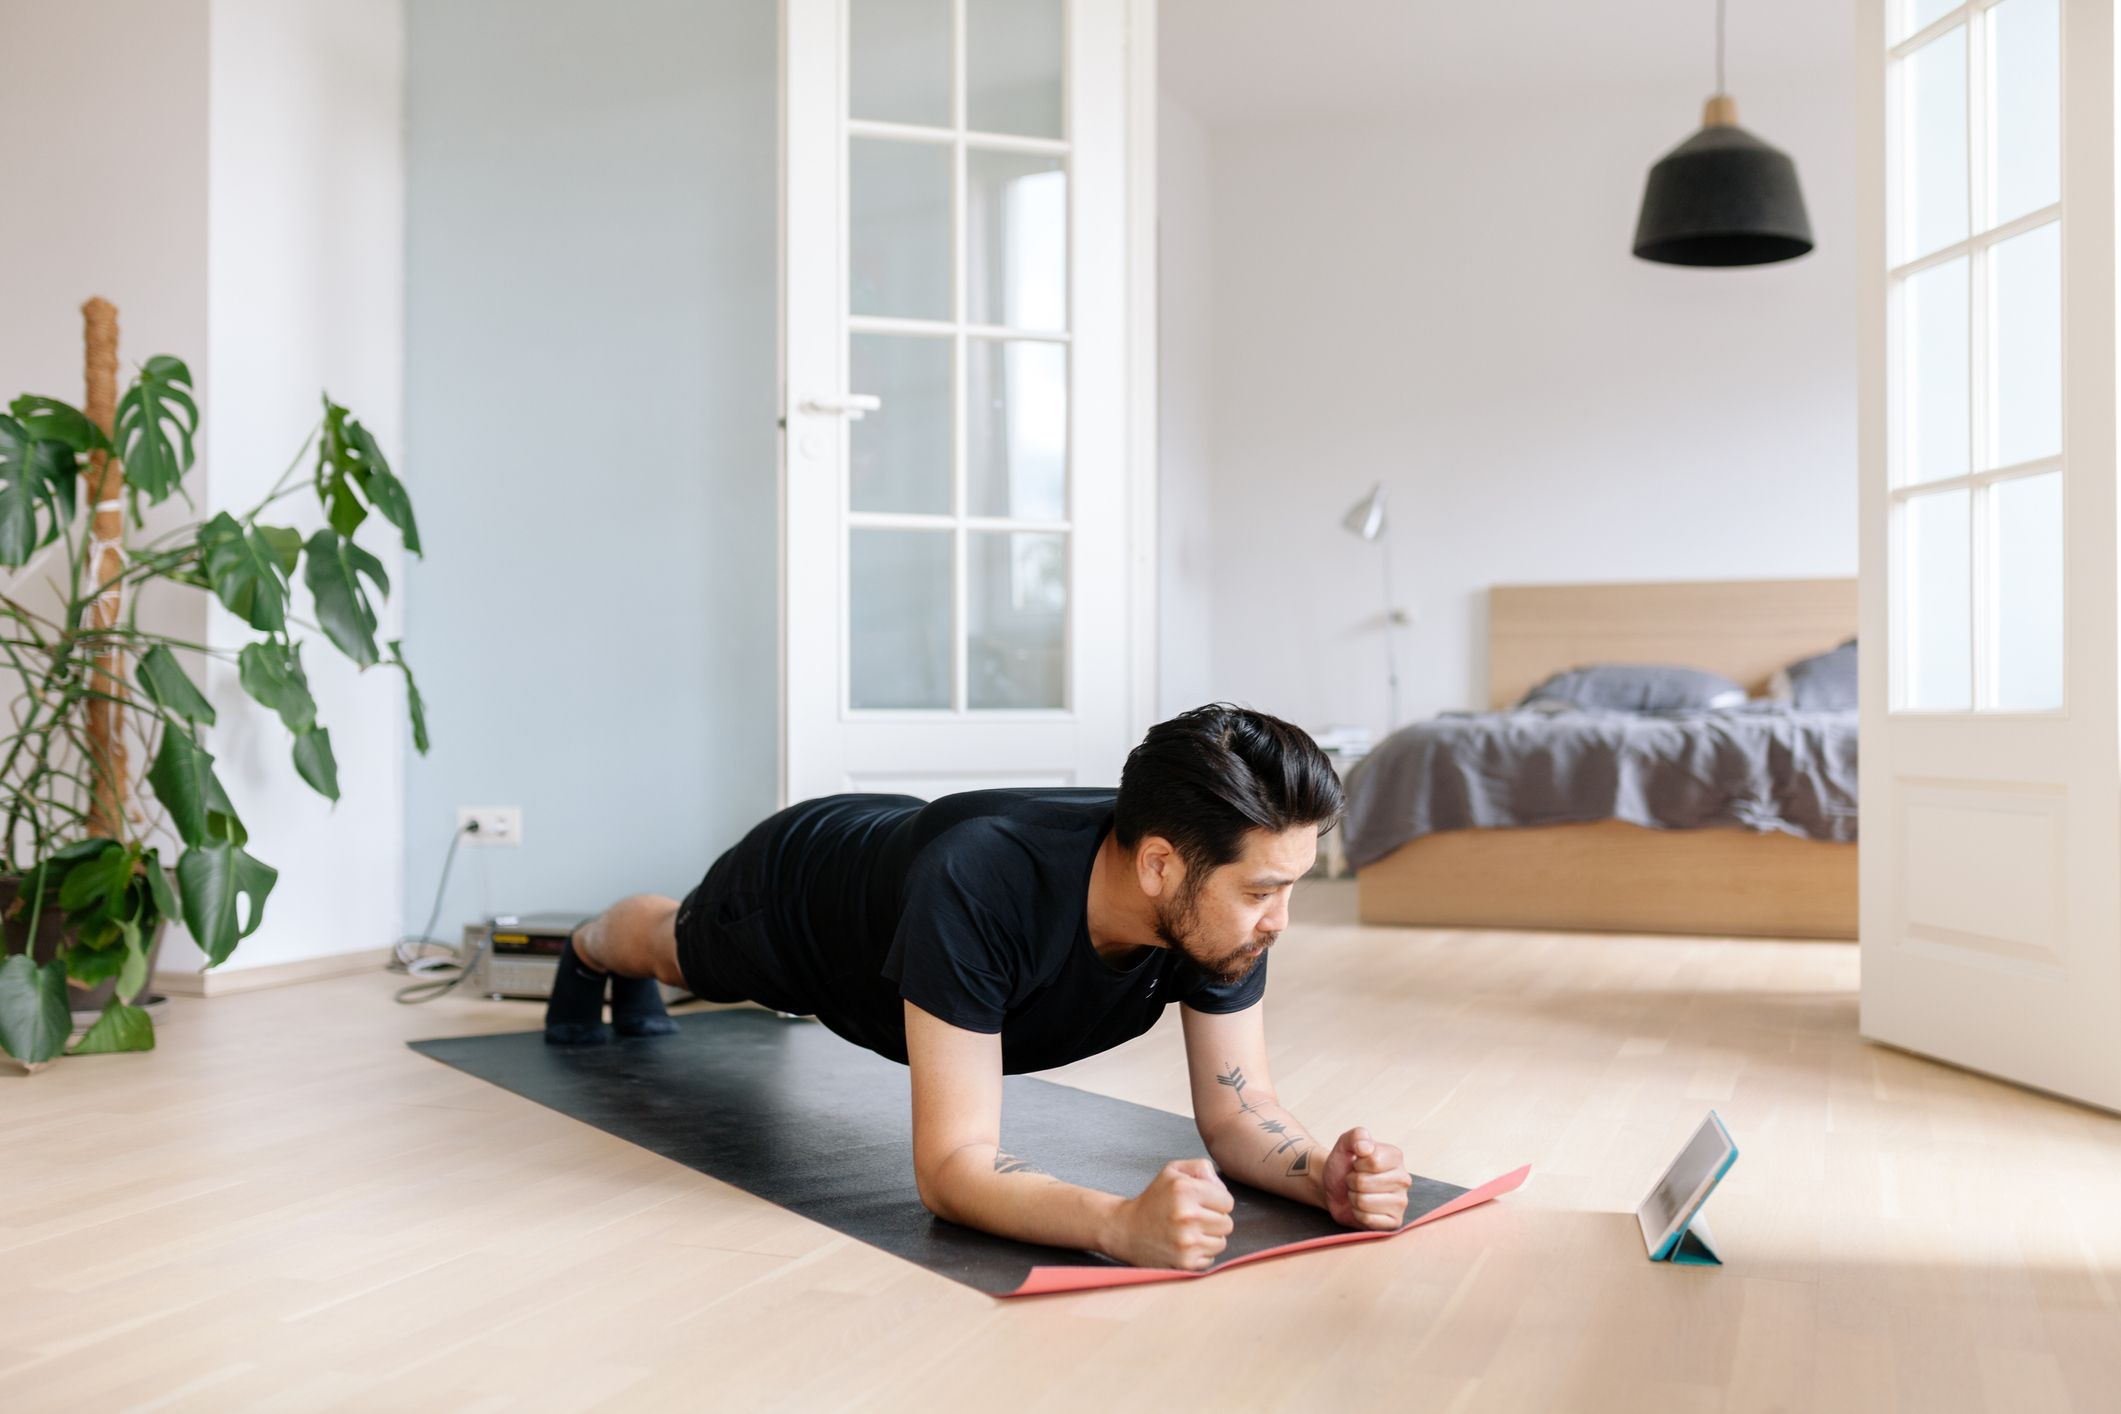 Image from Men's Health